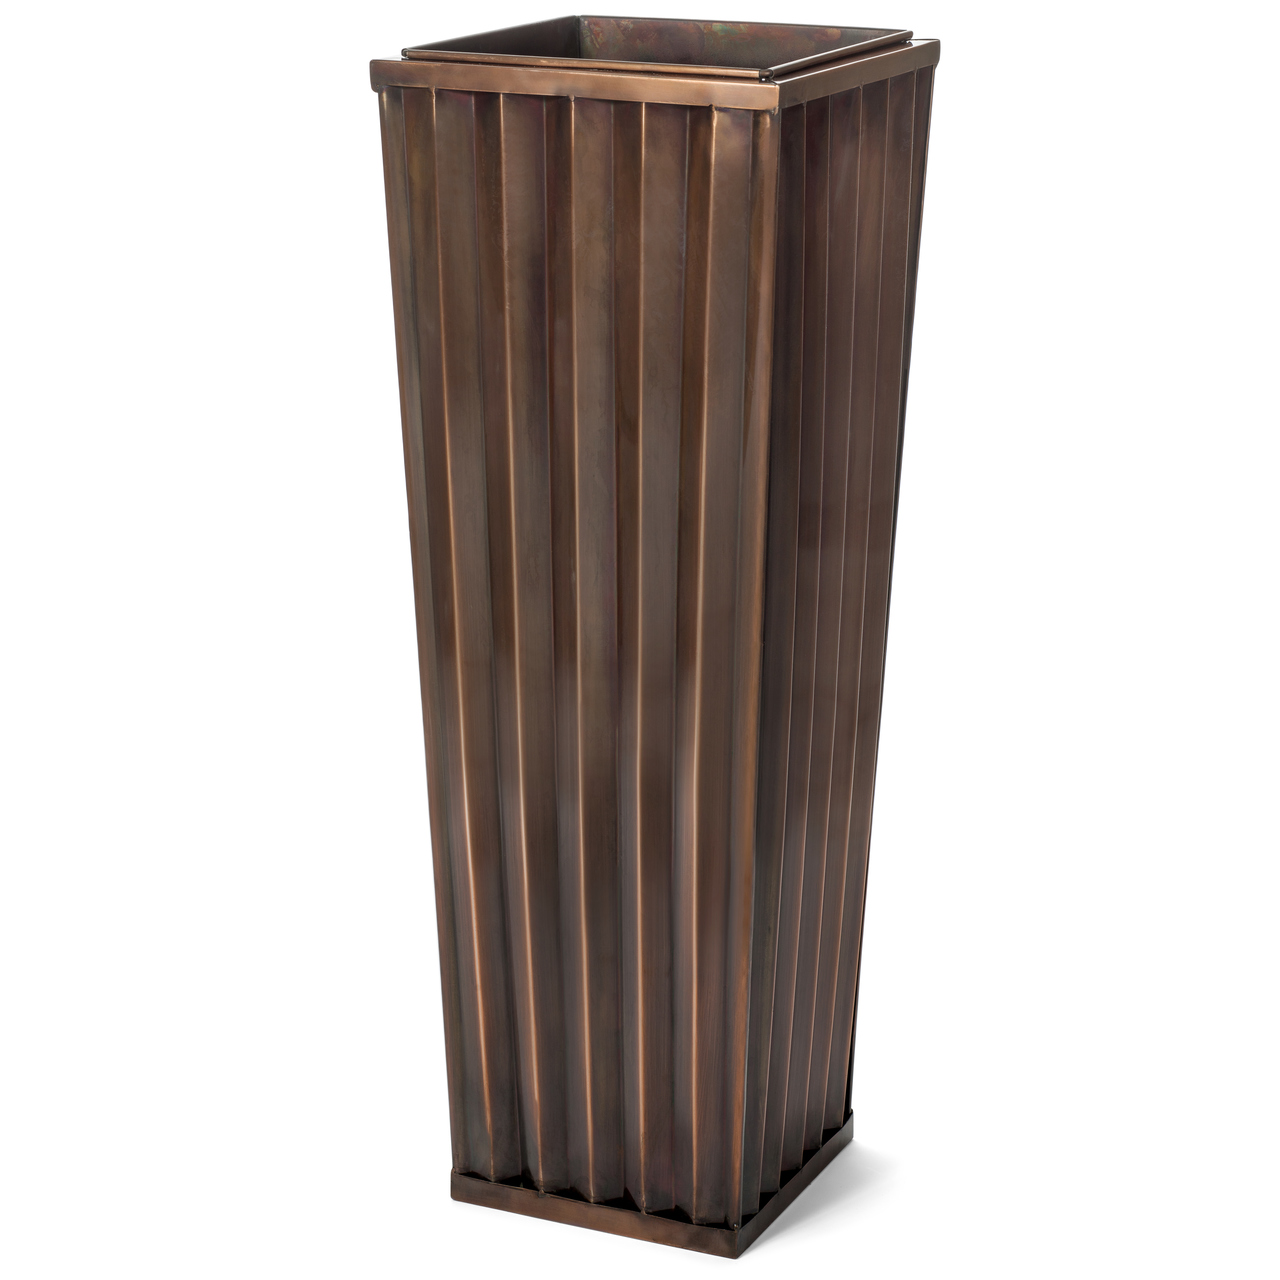 Deck Planters Planter Large Tall Outdoor Indoor Patio Deck Flower